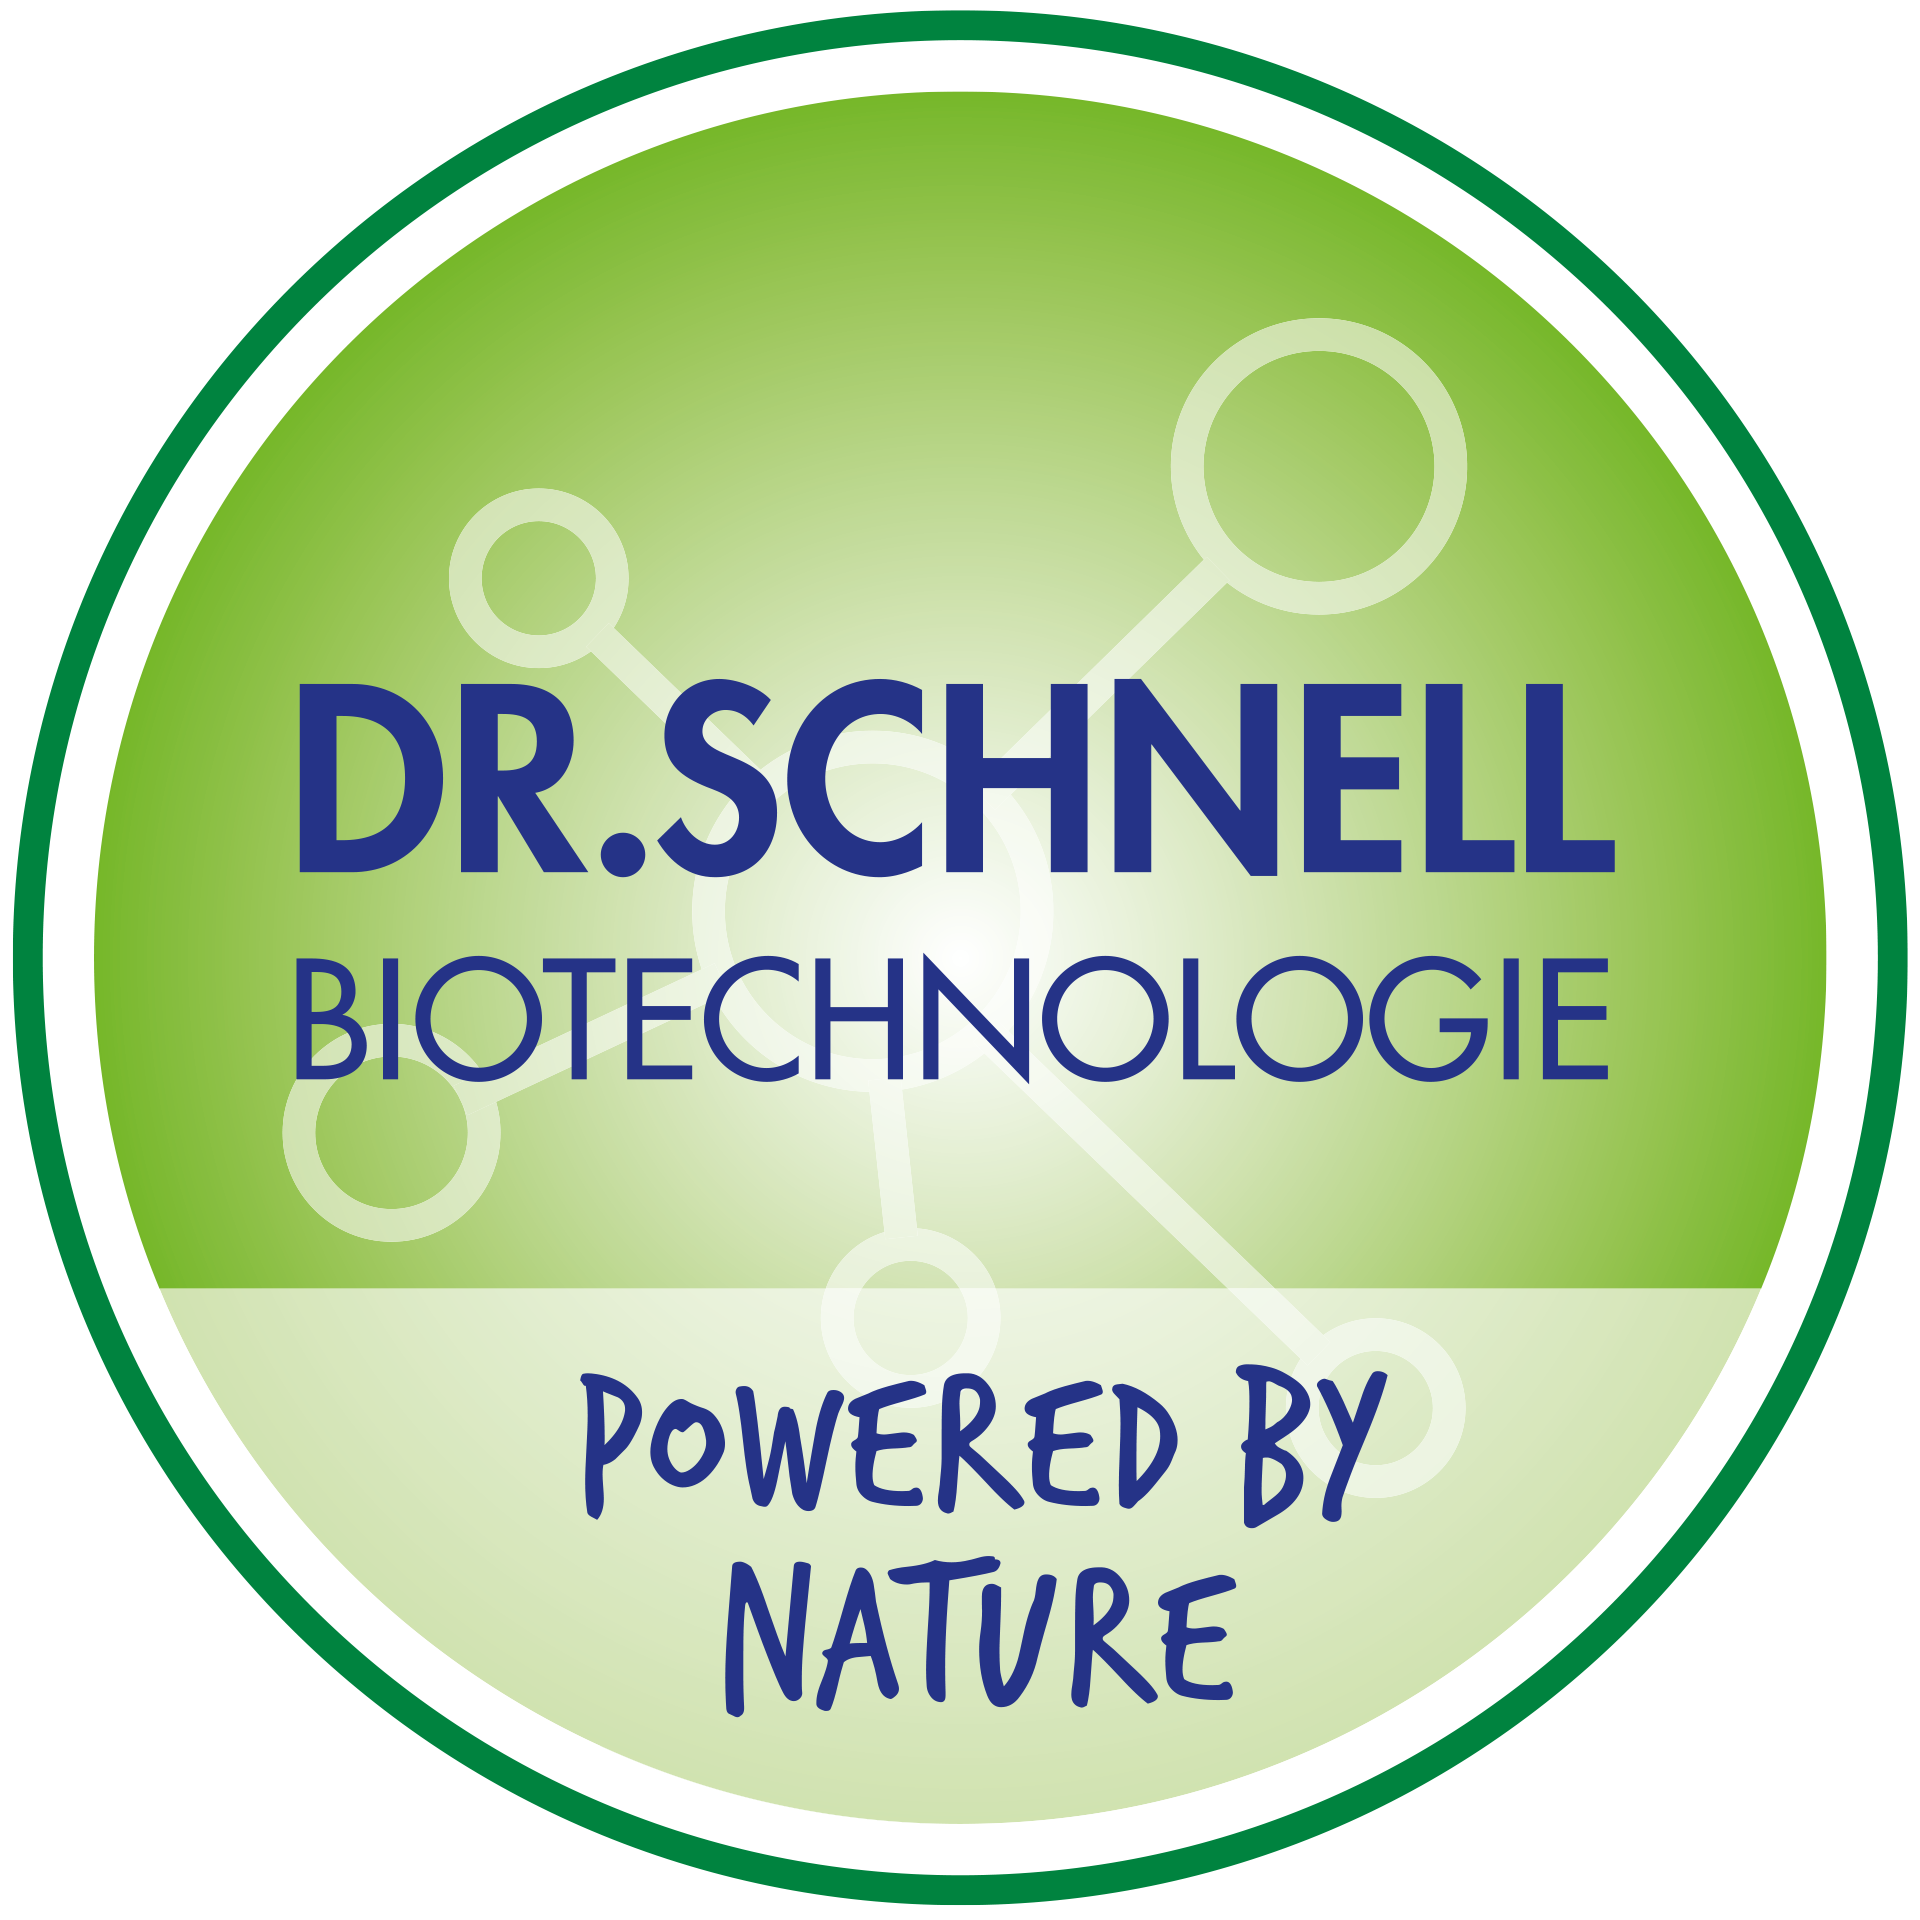 DR.SCHNELL Biotechnologie powered by Nature